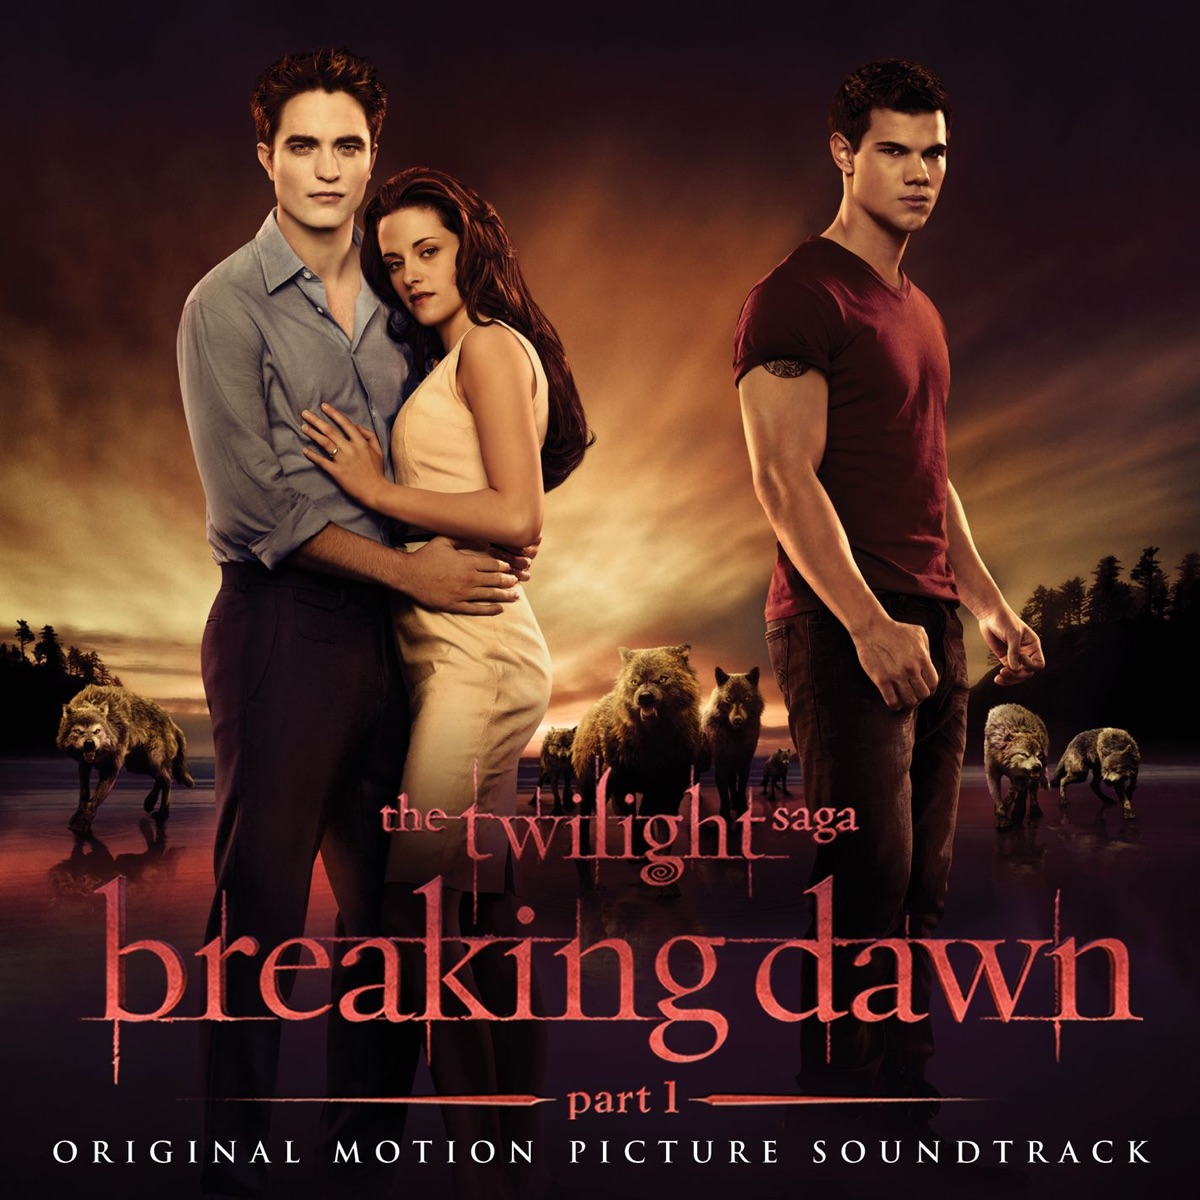 The Twilight Saga Breaking Dawn - Pt 1 Original Motion Picture Soundtrack Various Artists CD cover